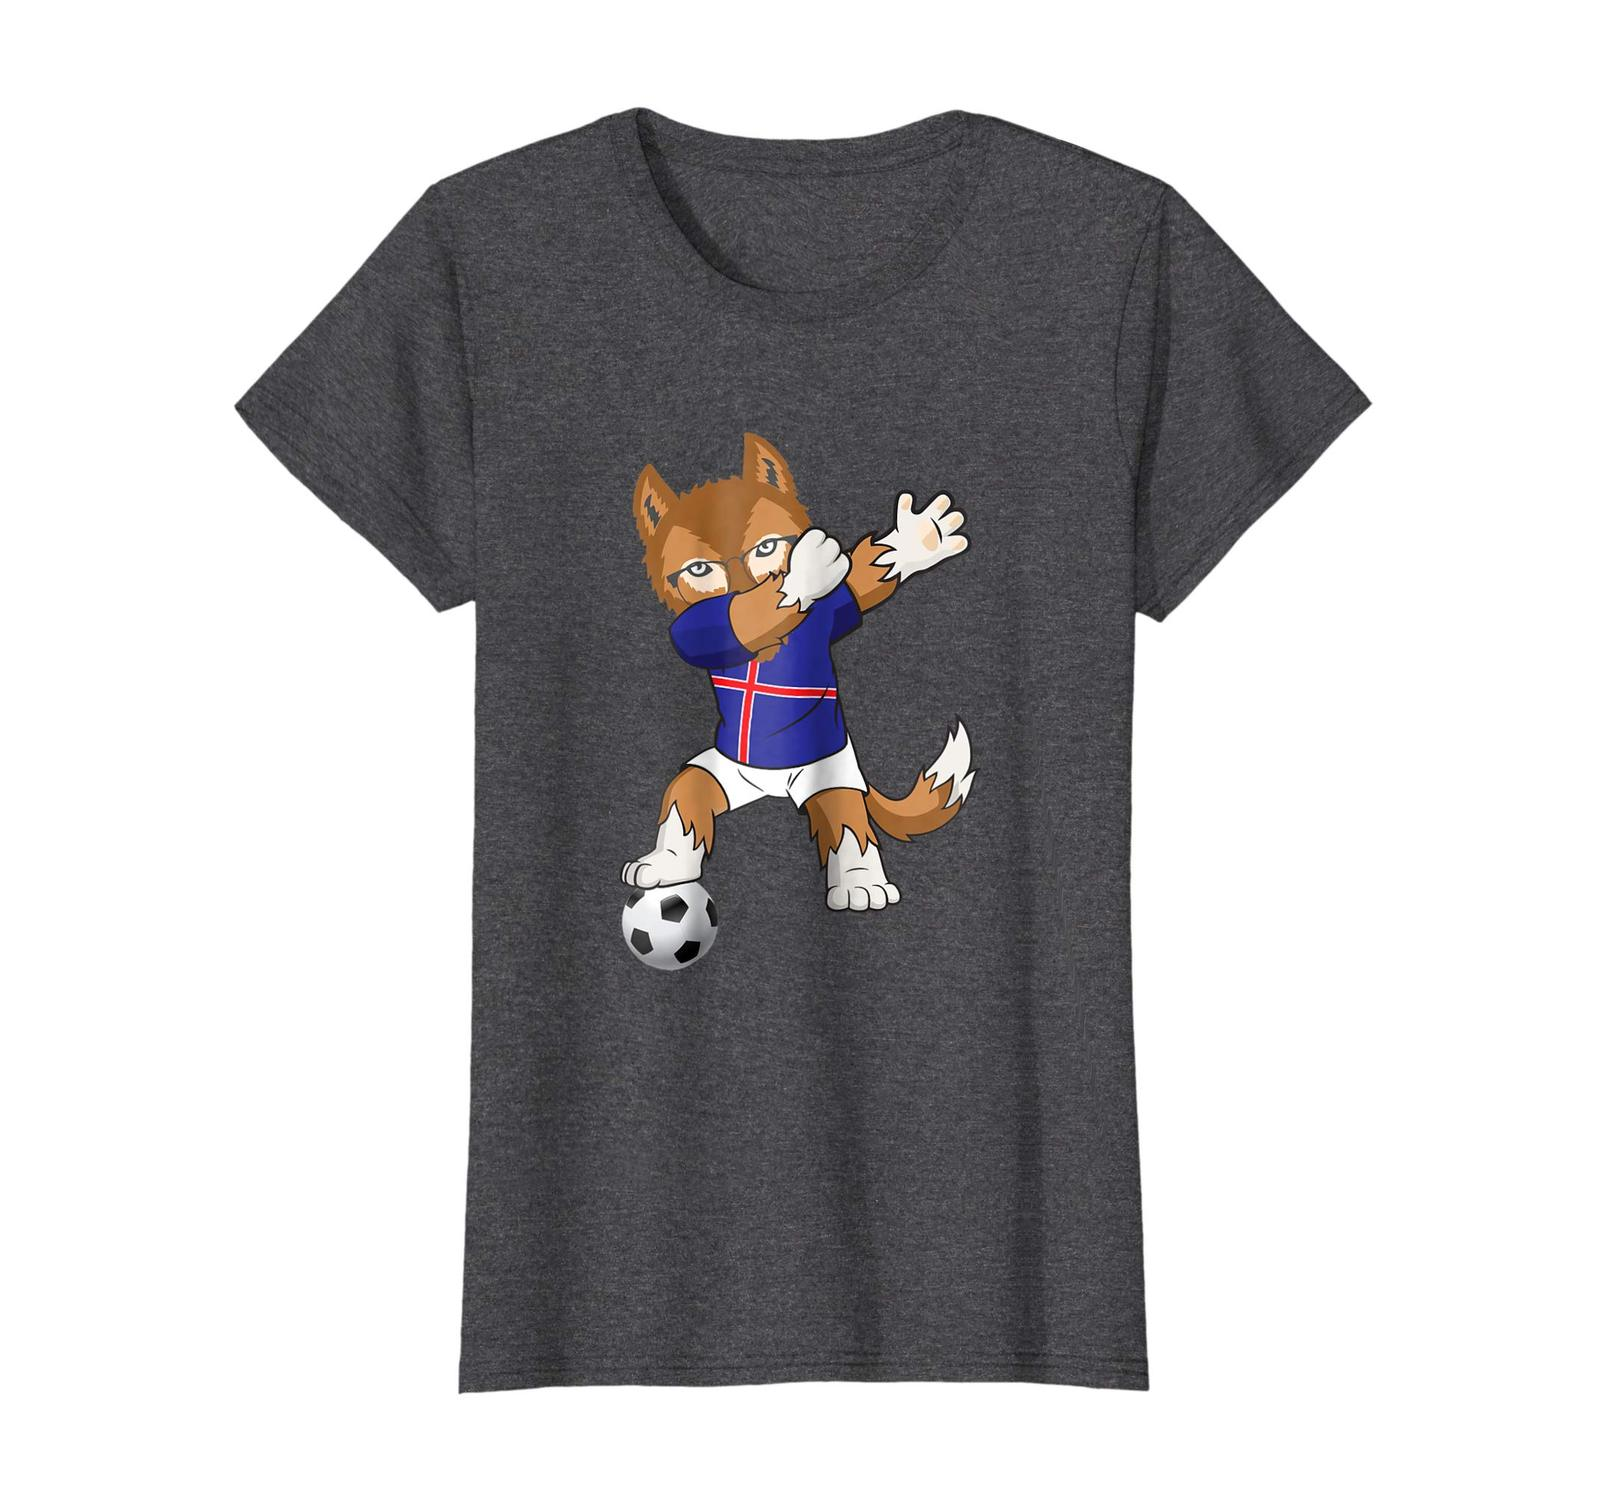 Brother Shirts - Iceland Soccer Jersey 2018 World Football Cup T-Shirt Flag Wowe